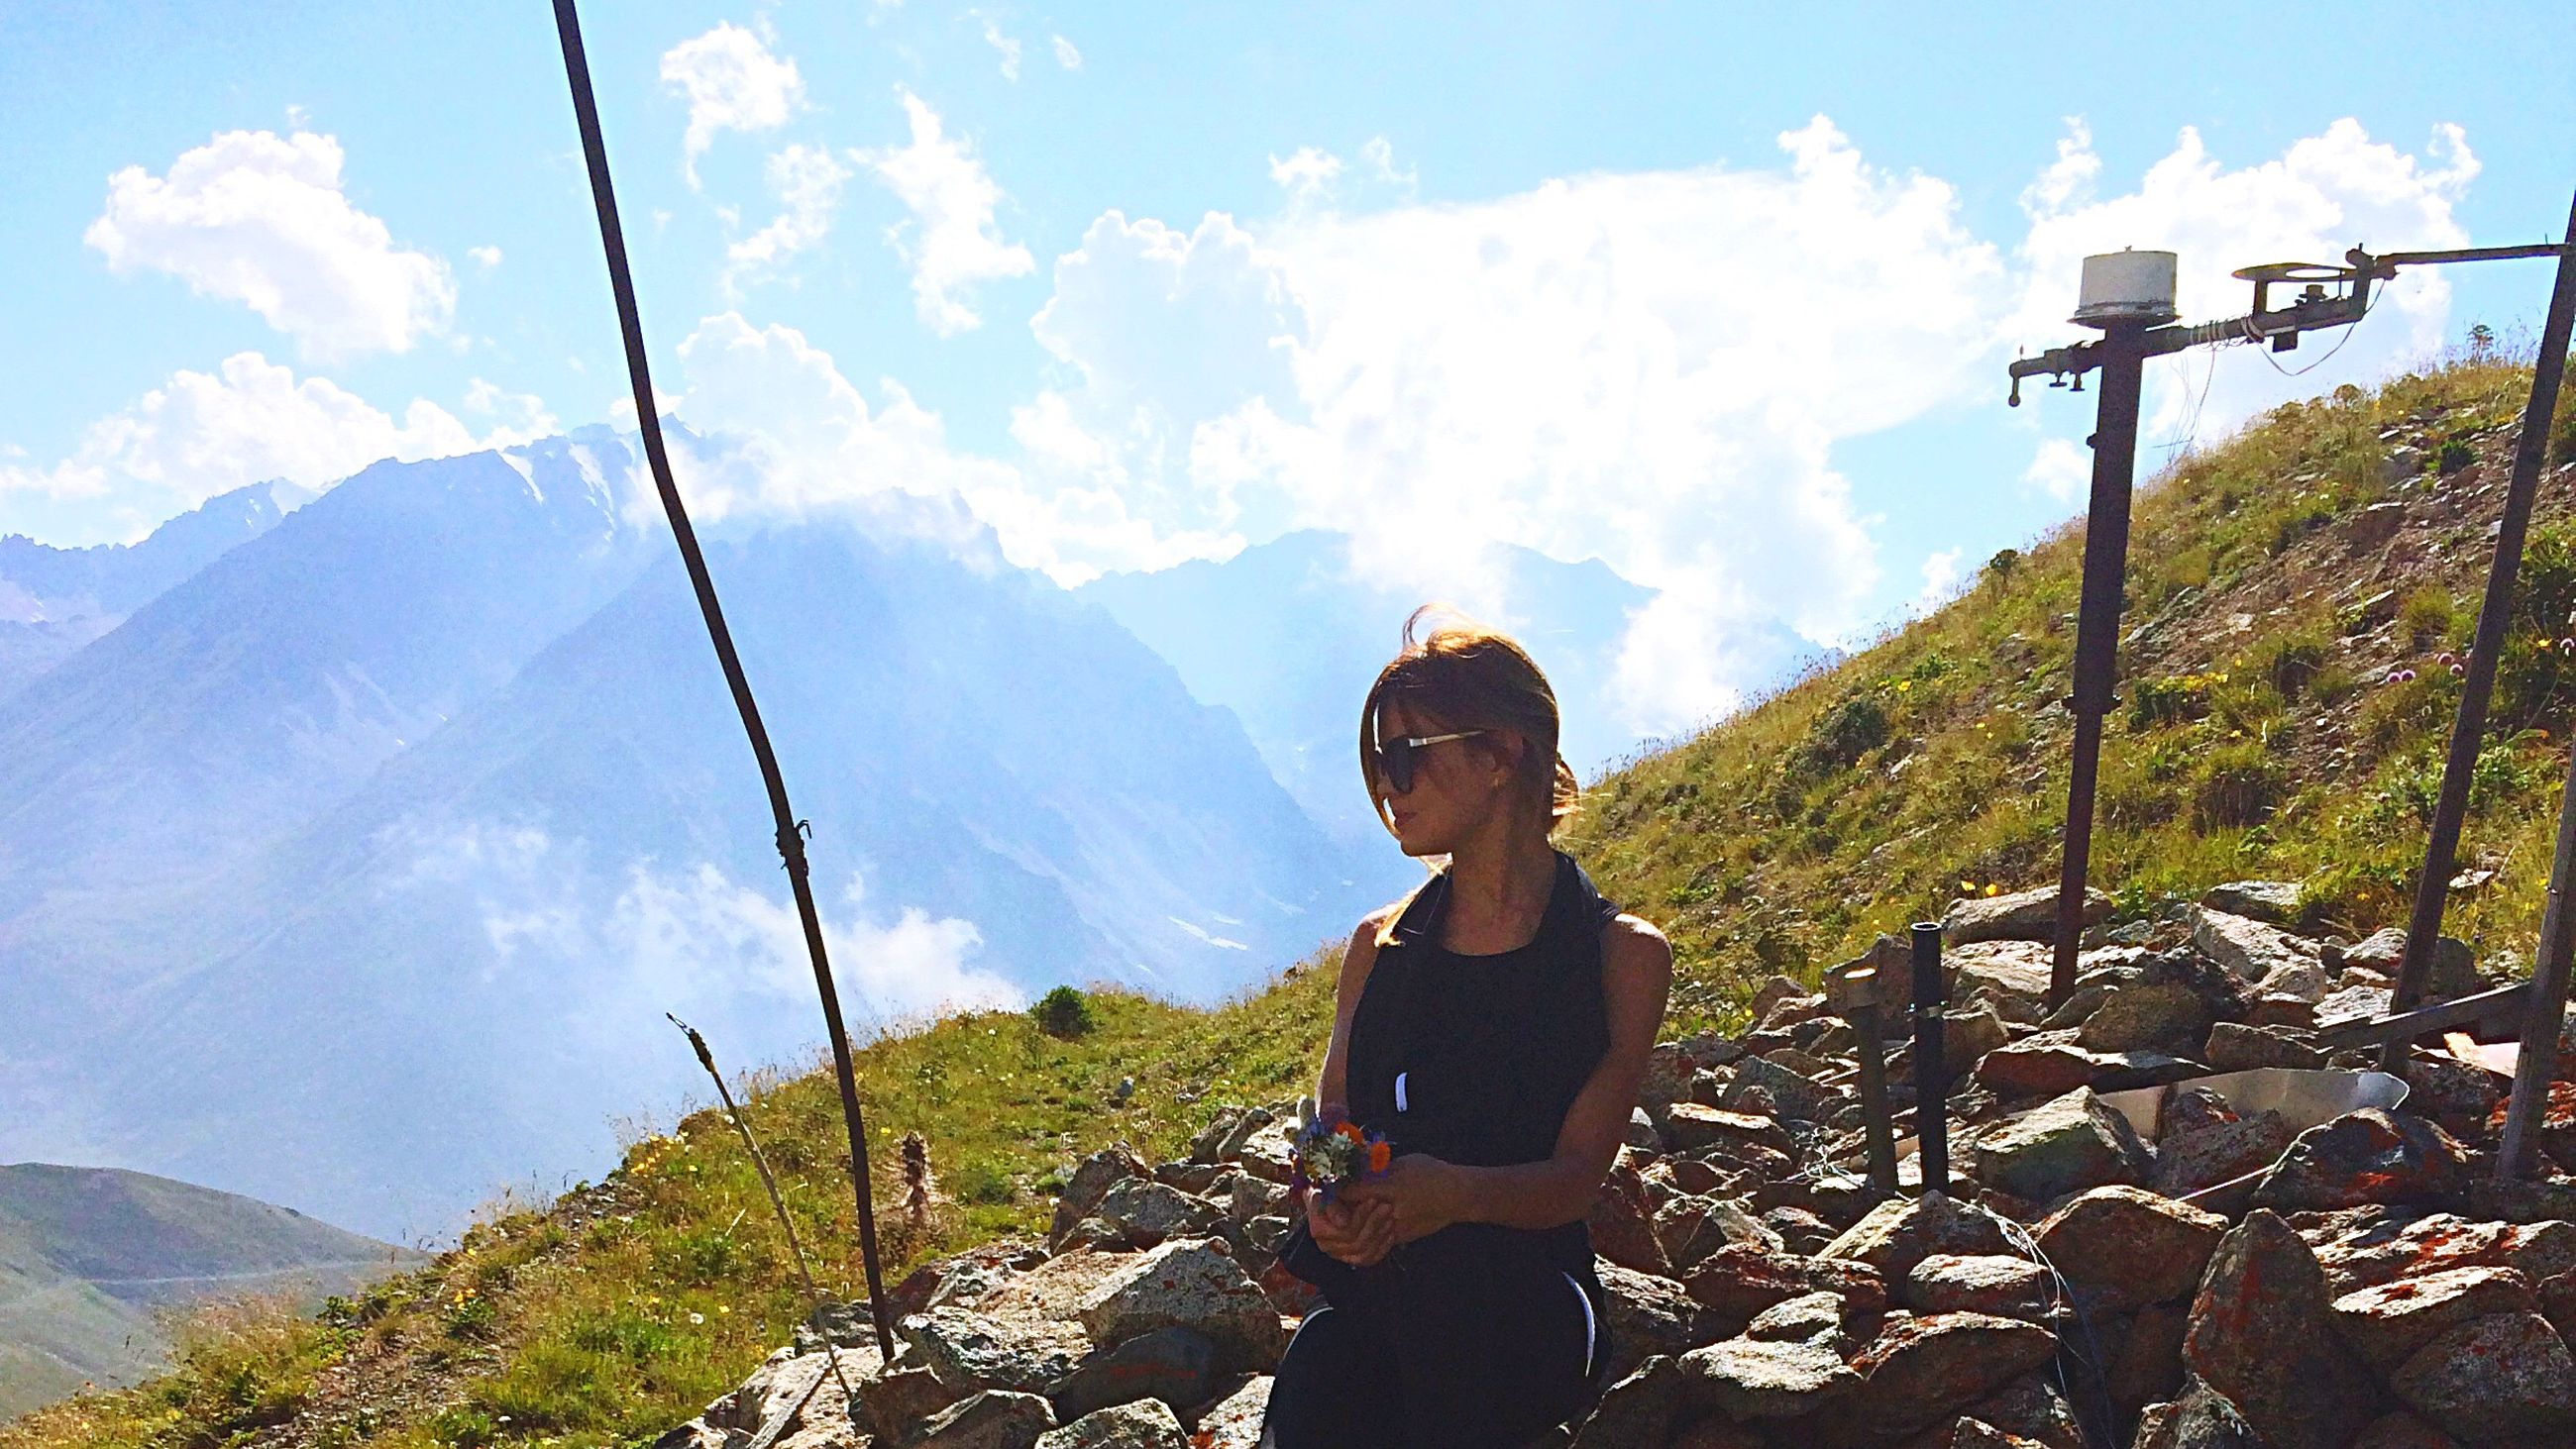 sky, sitting, mountain, casual clothing, cloud - sky, outdoors, day, young adult, in front of, scenics, mountain range